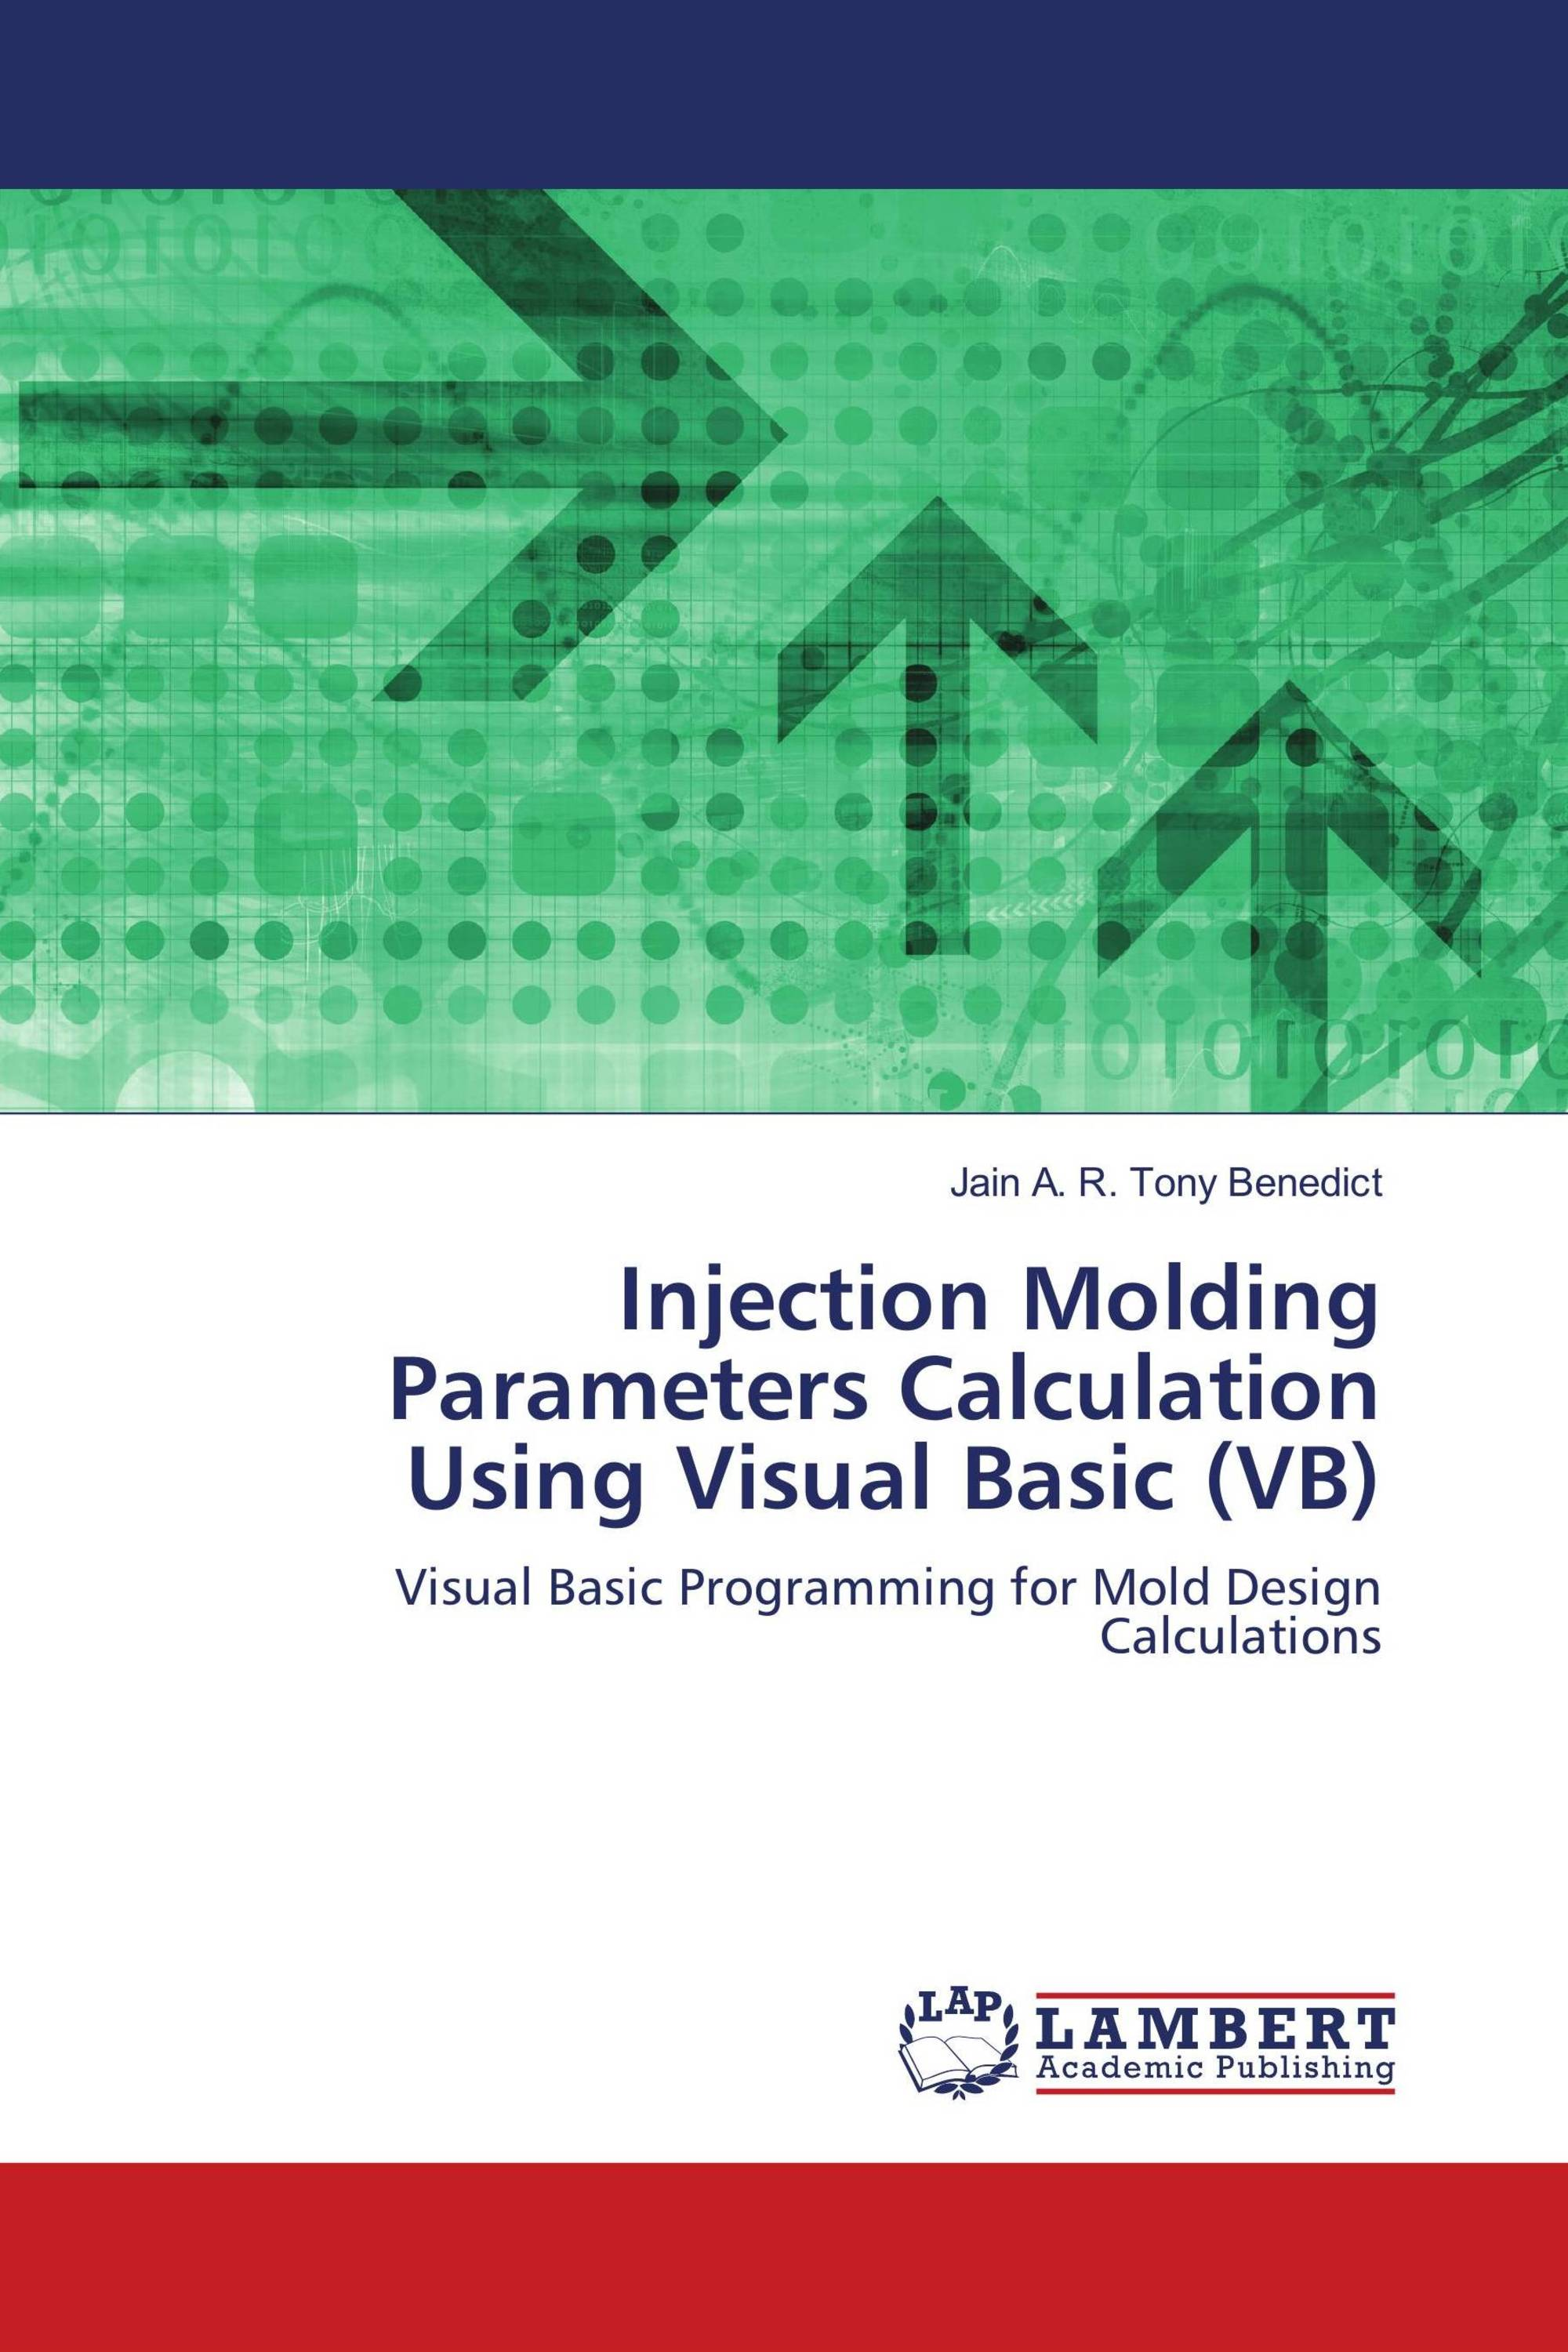 Injection Molding Parameters Calculation Using Visual Basic